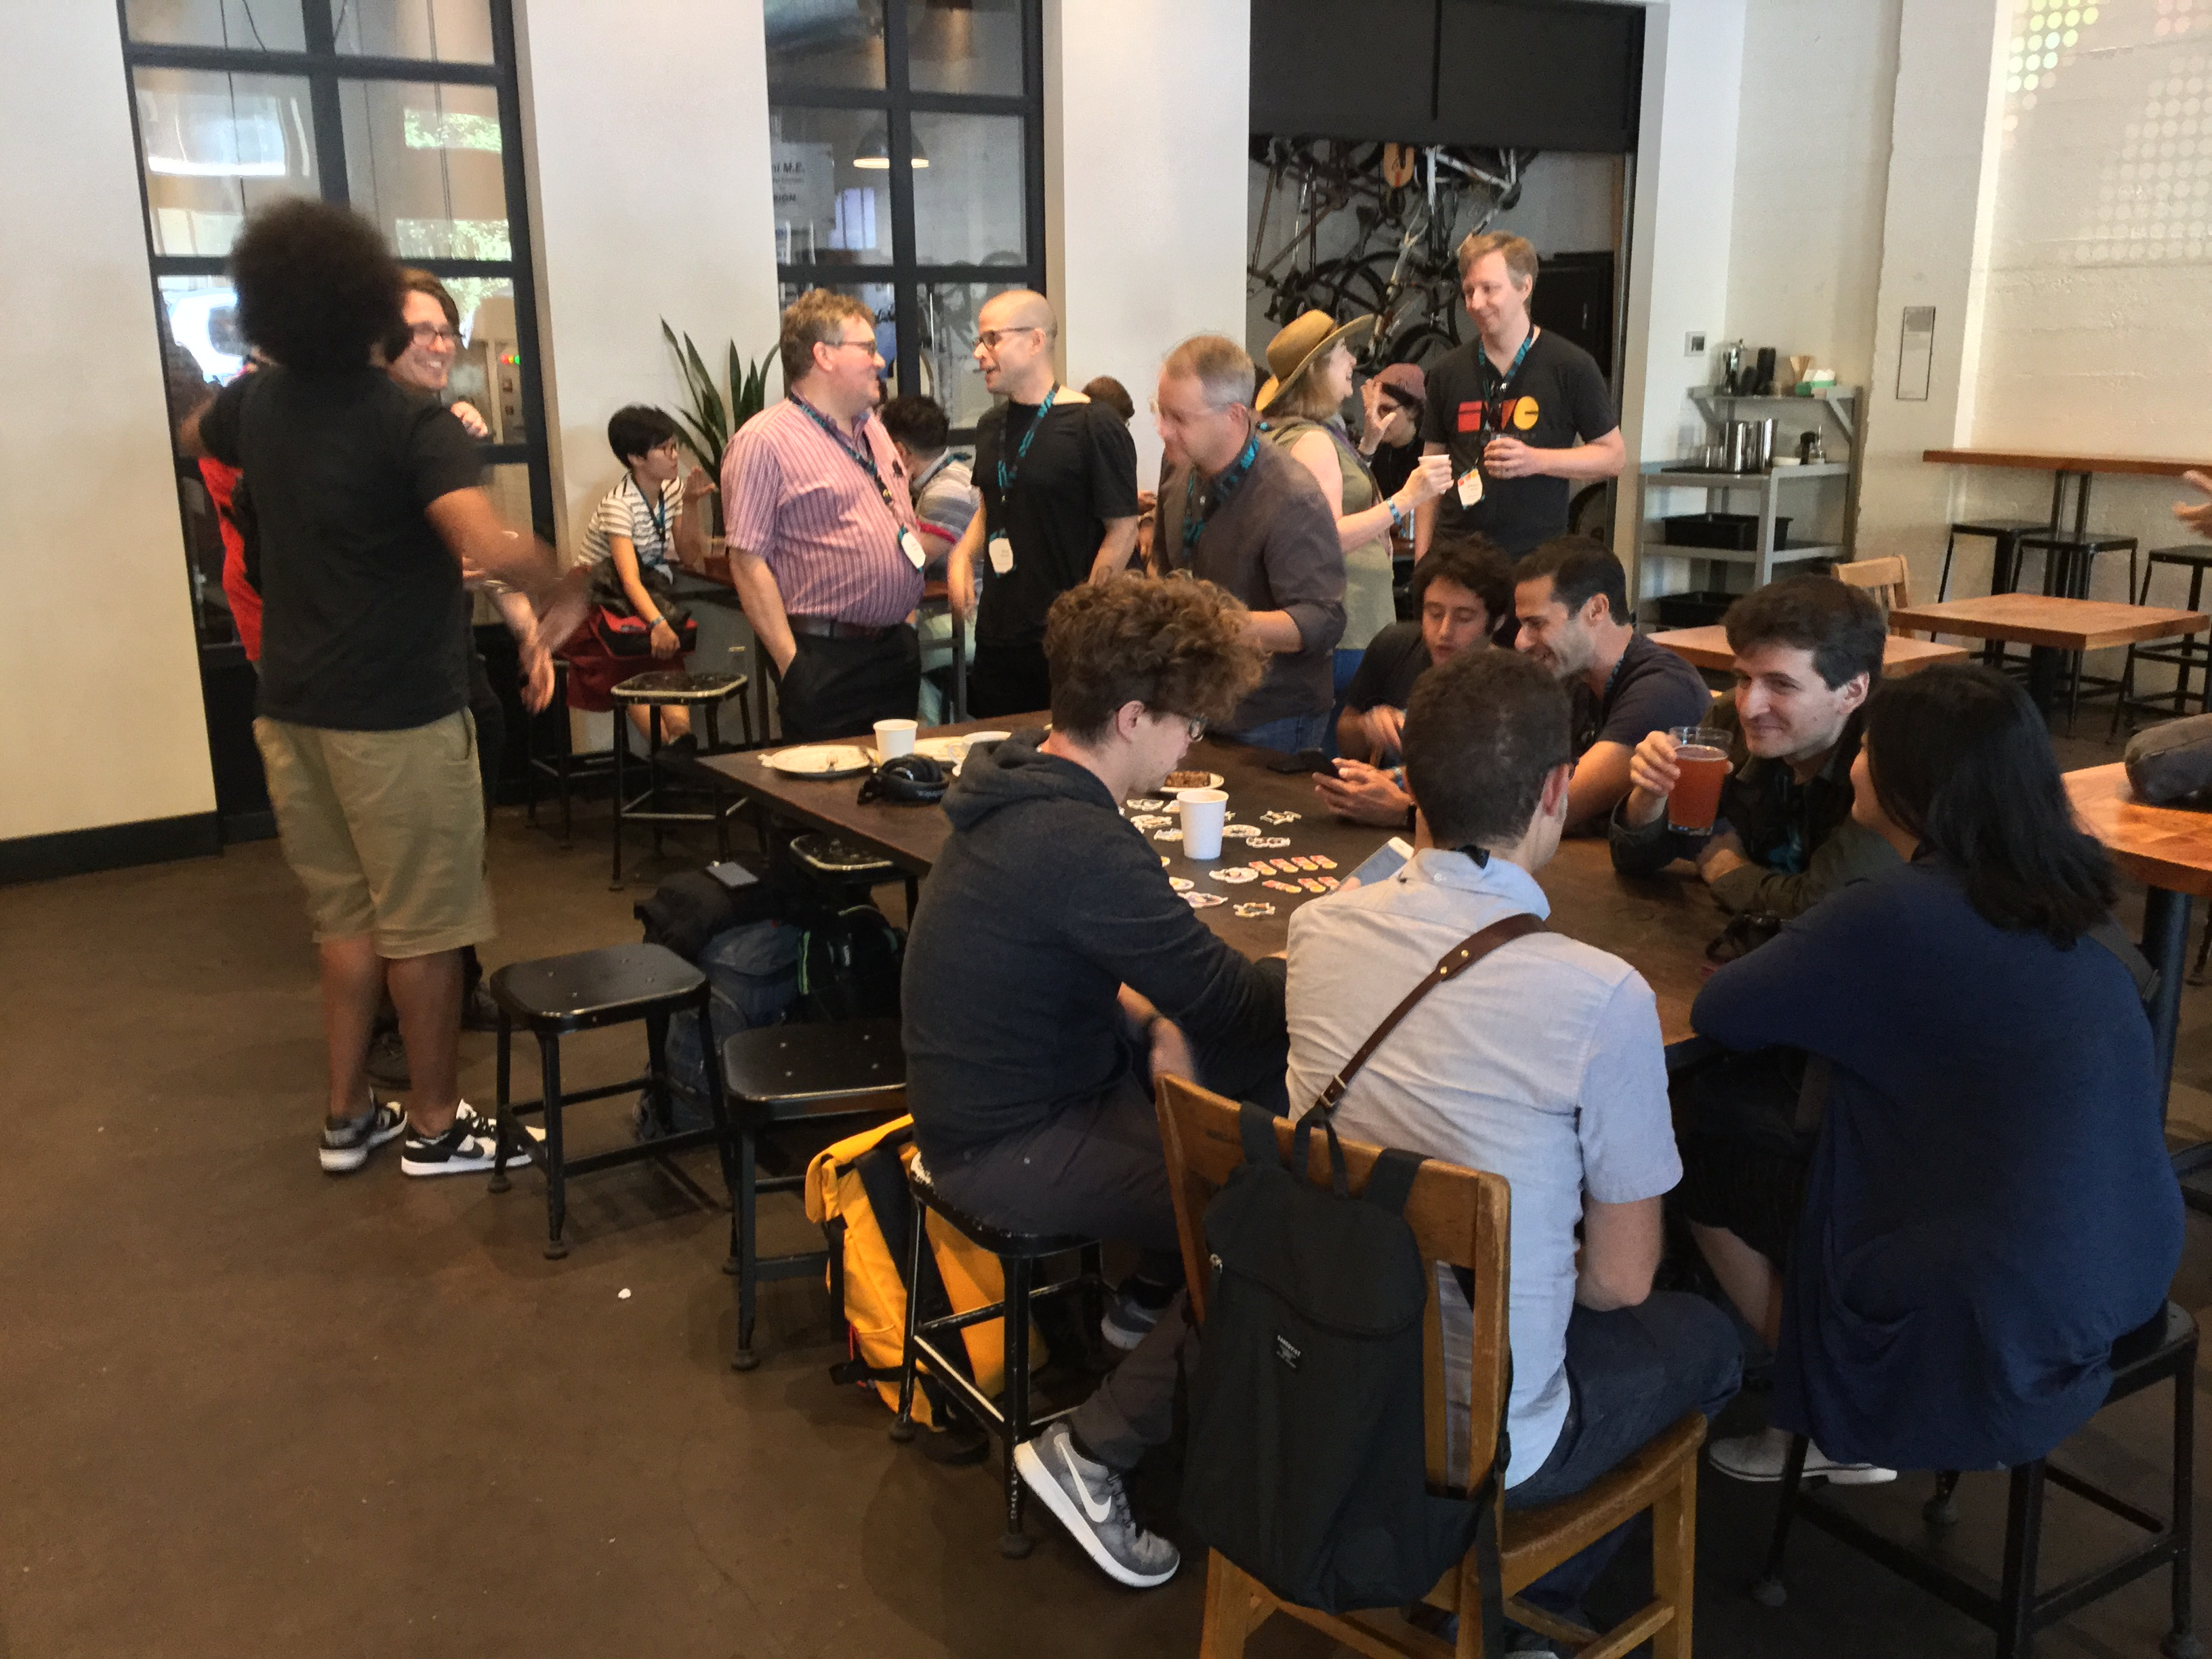 XOXO IndieWeb meetup participants taking over most of Cup and Bar